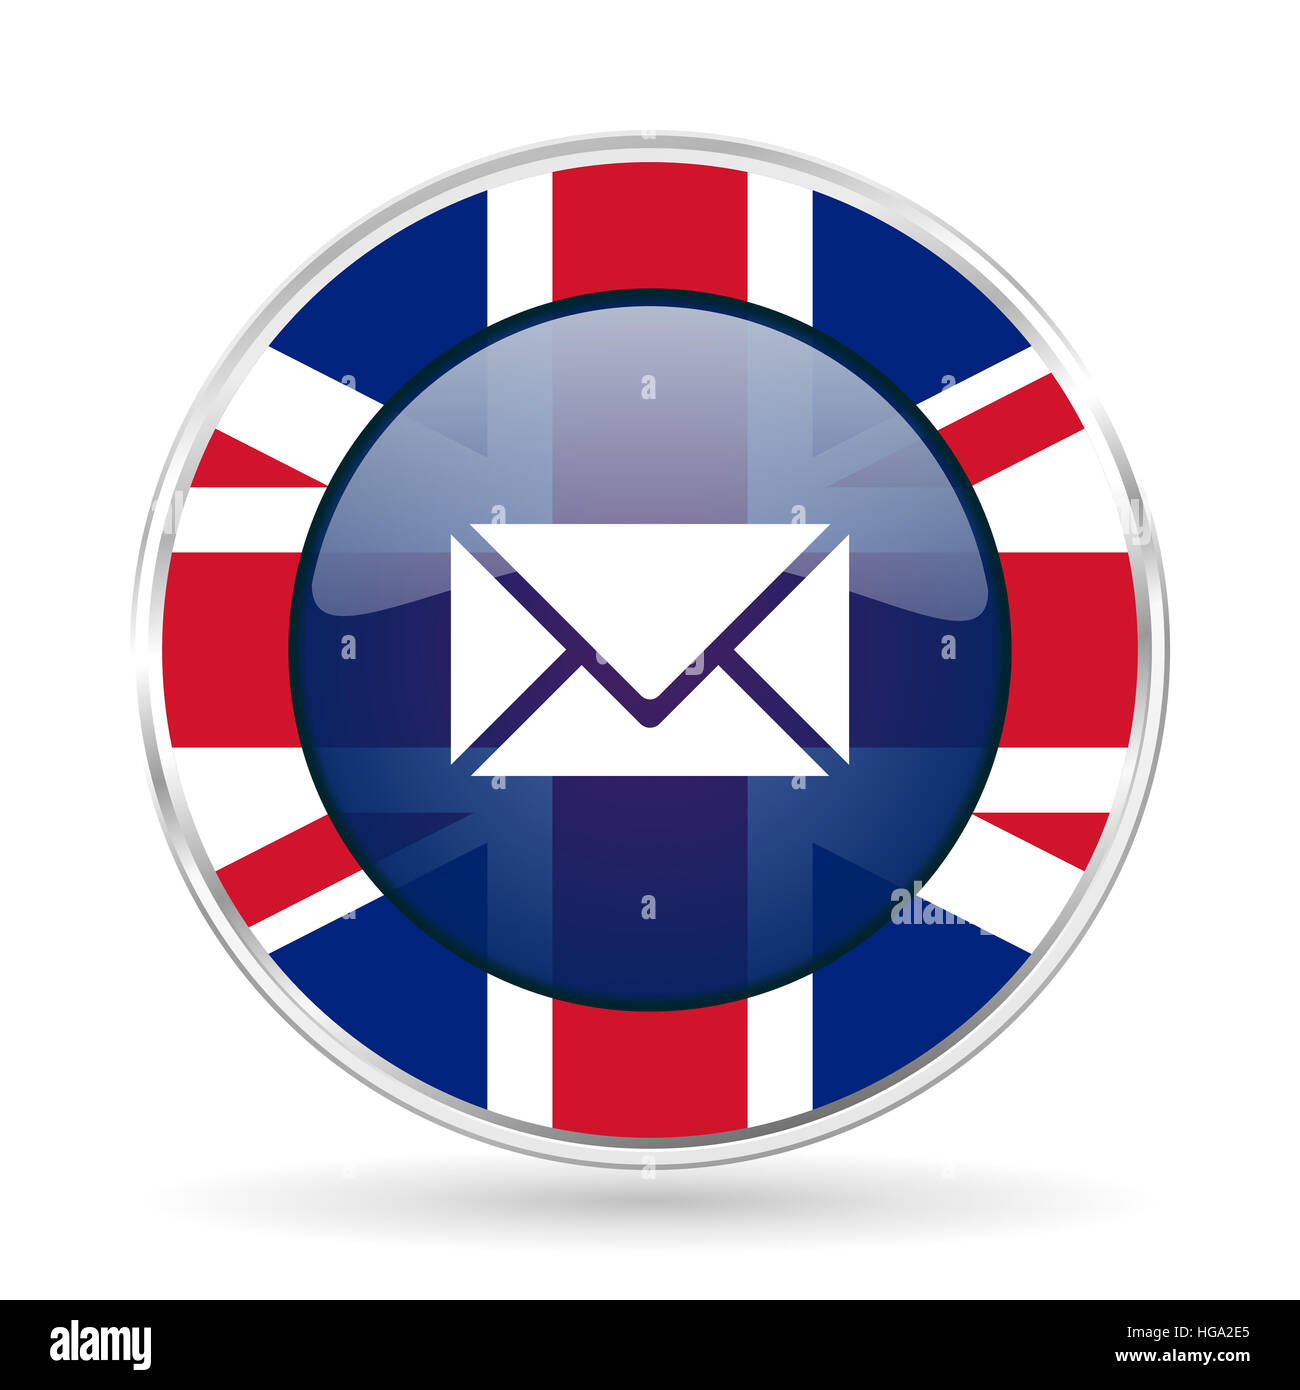 Email british design icon - round silver metallic border button with Great Britain flag - Stock Image